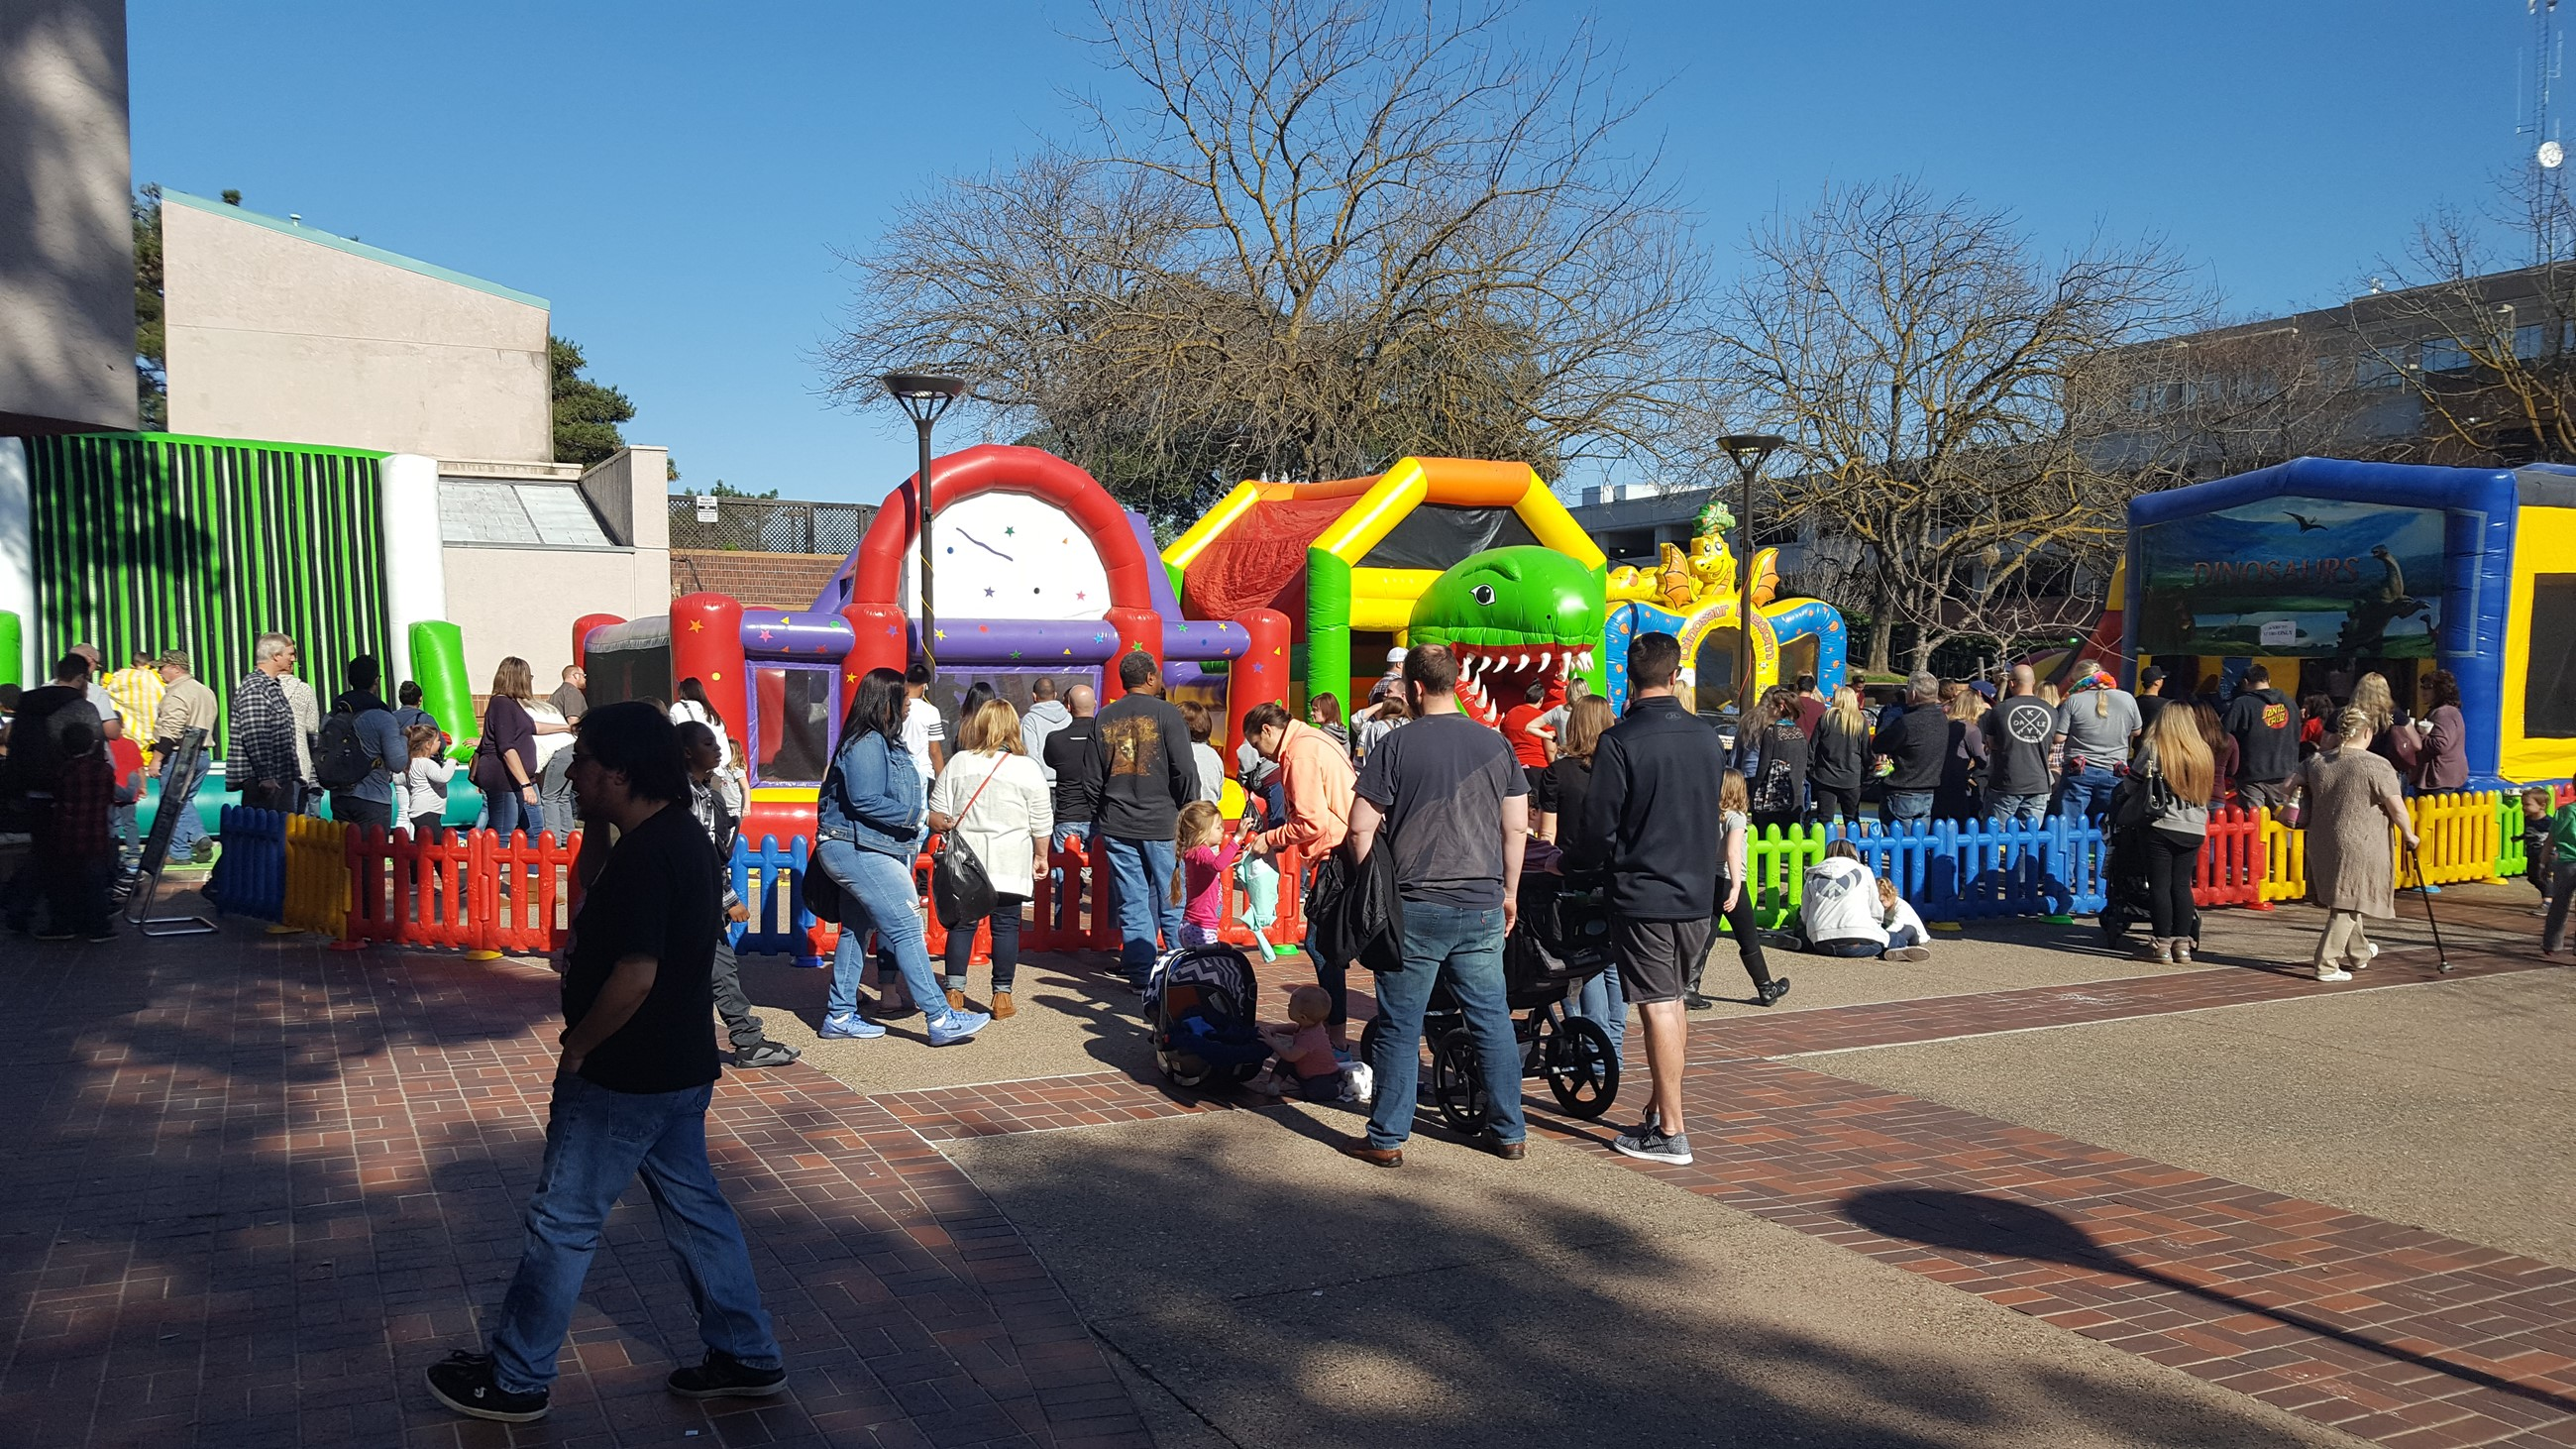 Bounce Houses in the Plaza